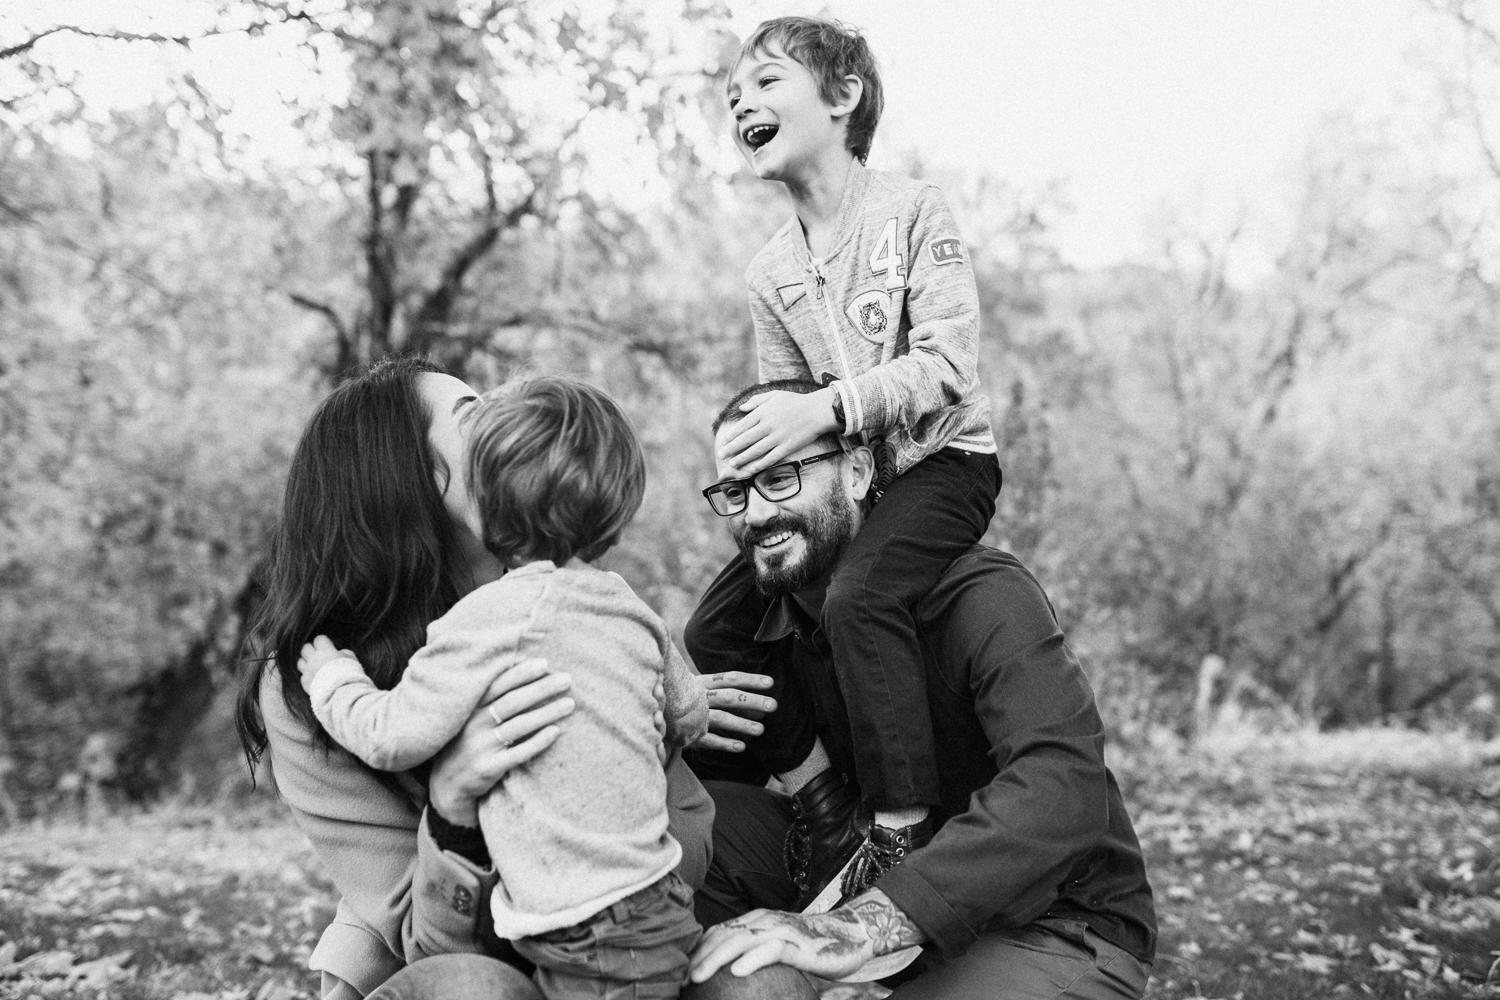 black-and-white-candid-family-photo-playing-in-fall-leaves-during-free-family-portrait-on-location-with-jen-fairchild-photography-in-slc-ut